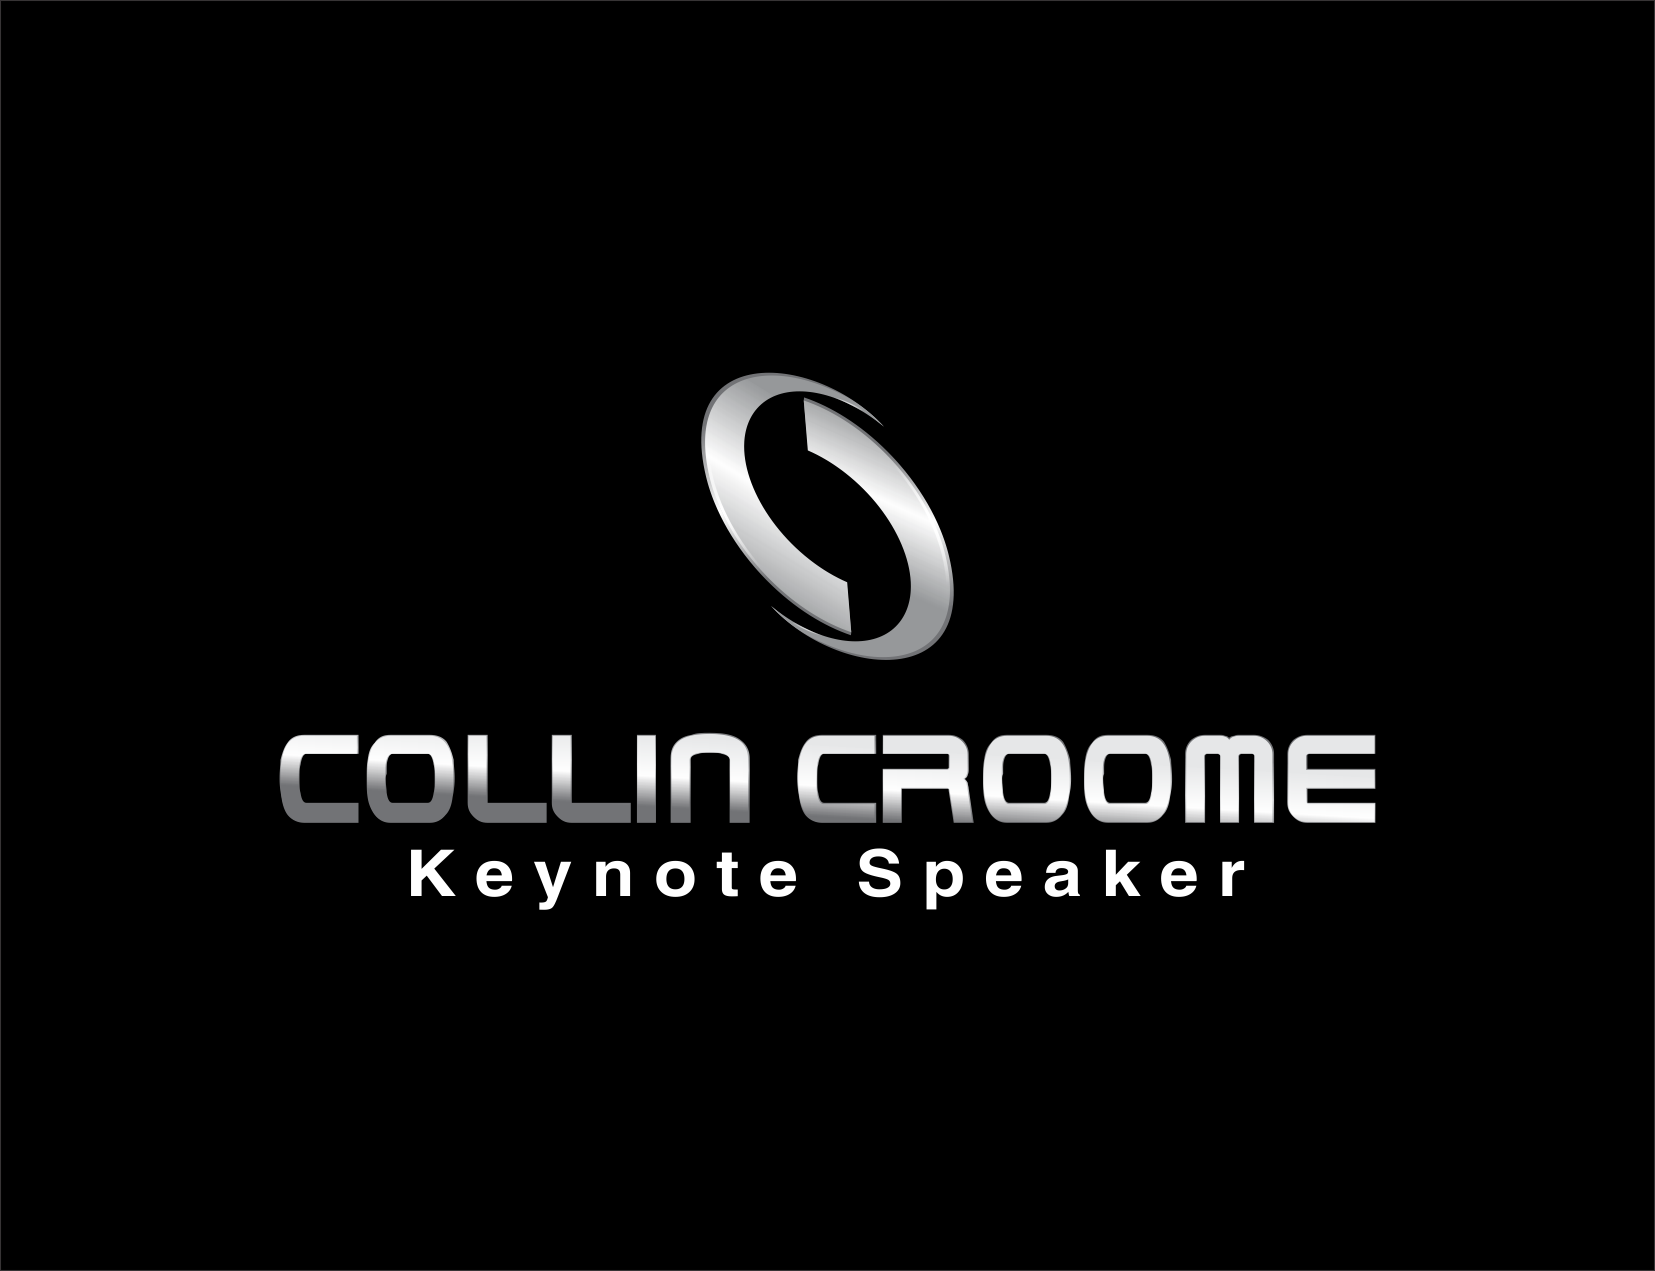 Logo Design by Yansen Yansen - Entry No. 204 in the Logo Design Contest Modern Logo Design for Collin Croome.